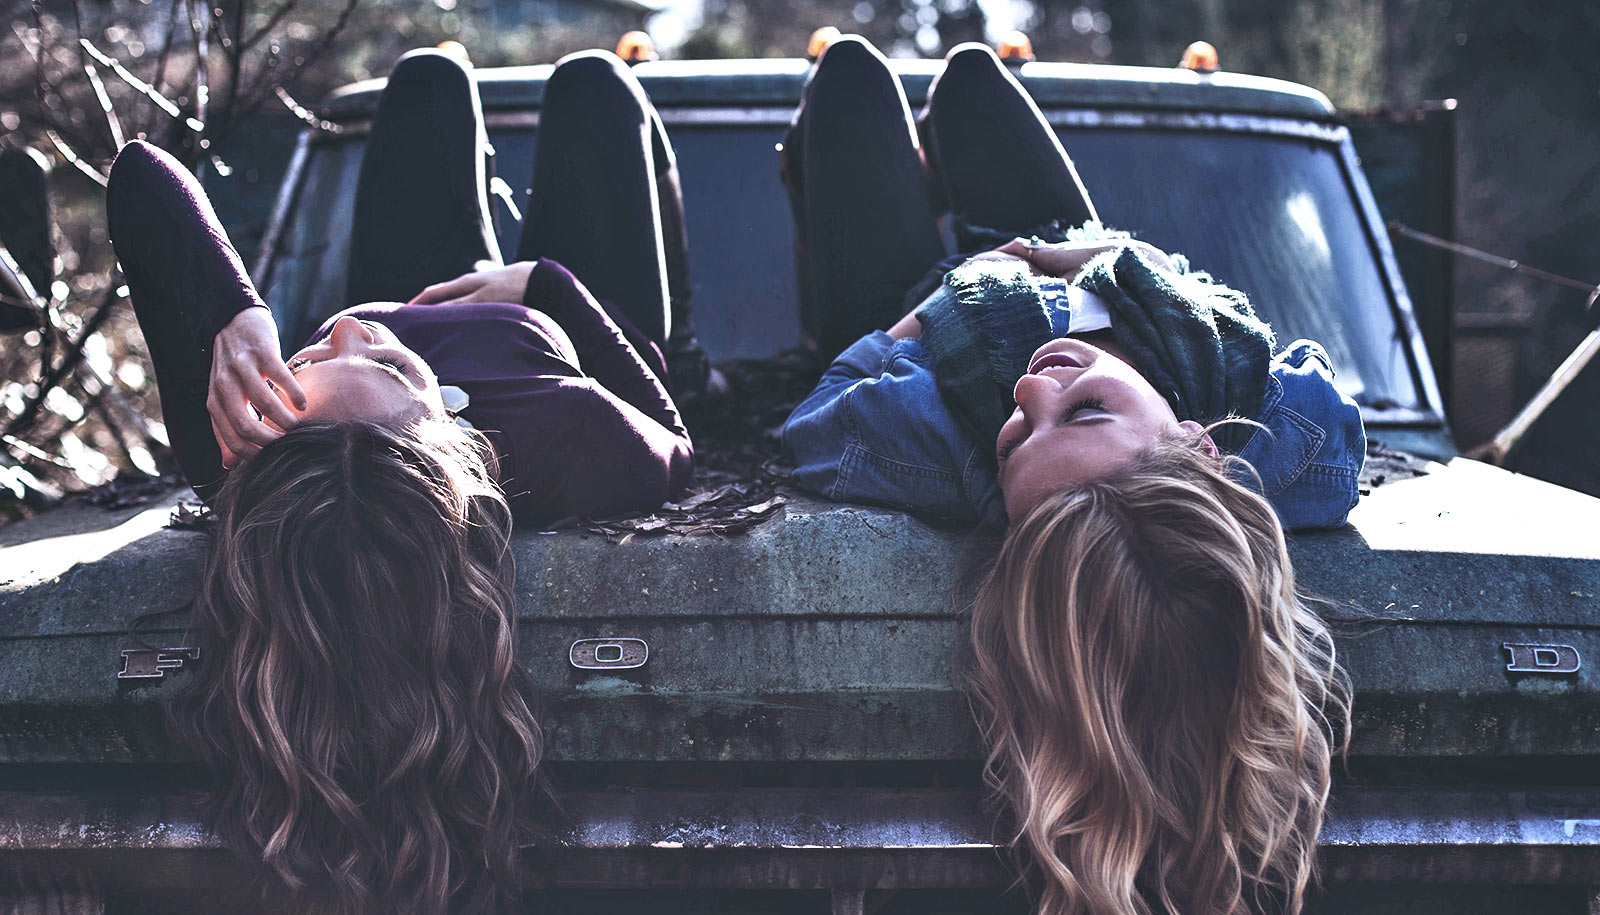 Nope Hormones Arent To Blame For Teen >> How Friendships Can Push Teens Especially Girls To Delinquency